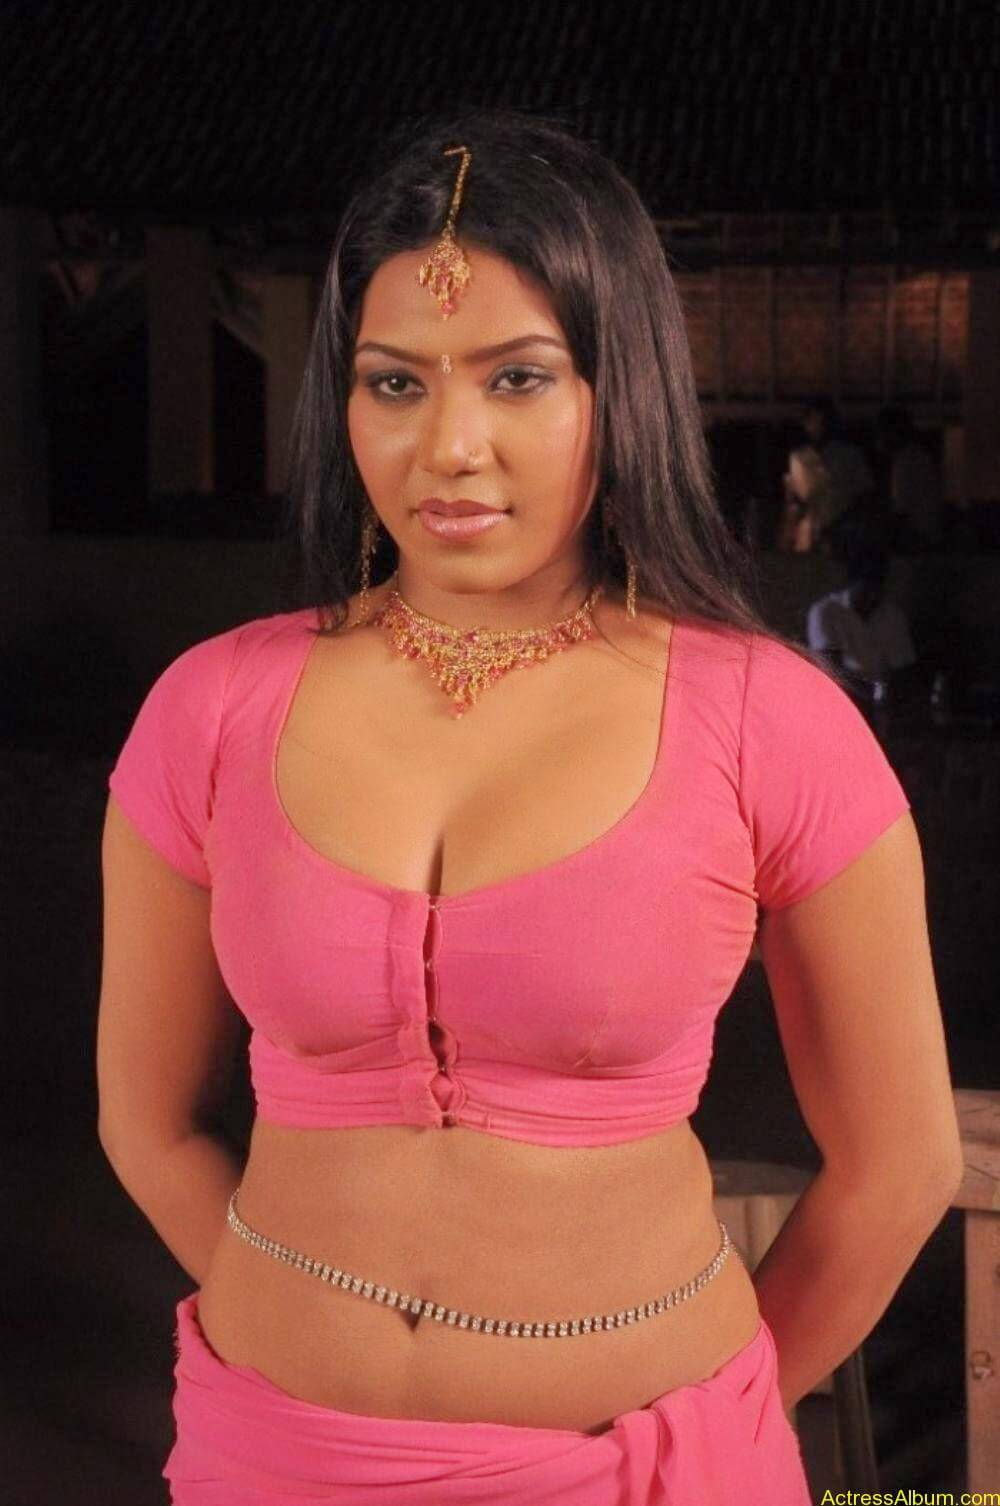 Veeran Muthu Movie Hot Stills Actress Album